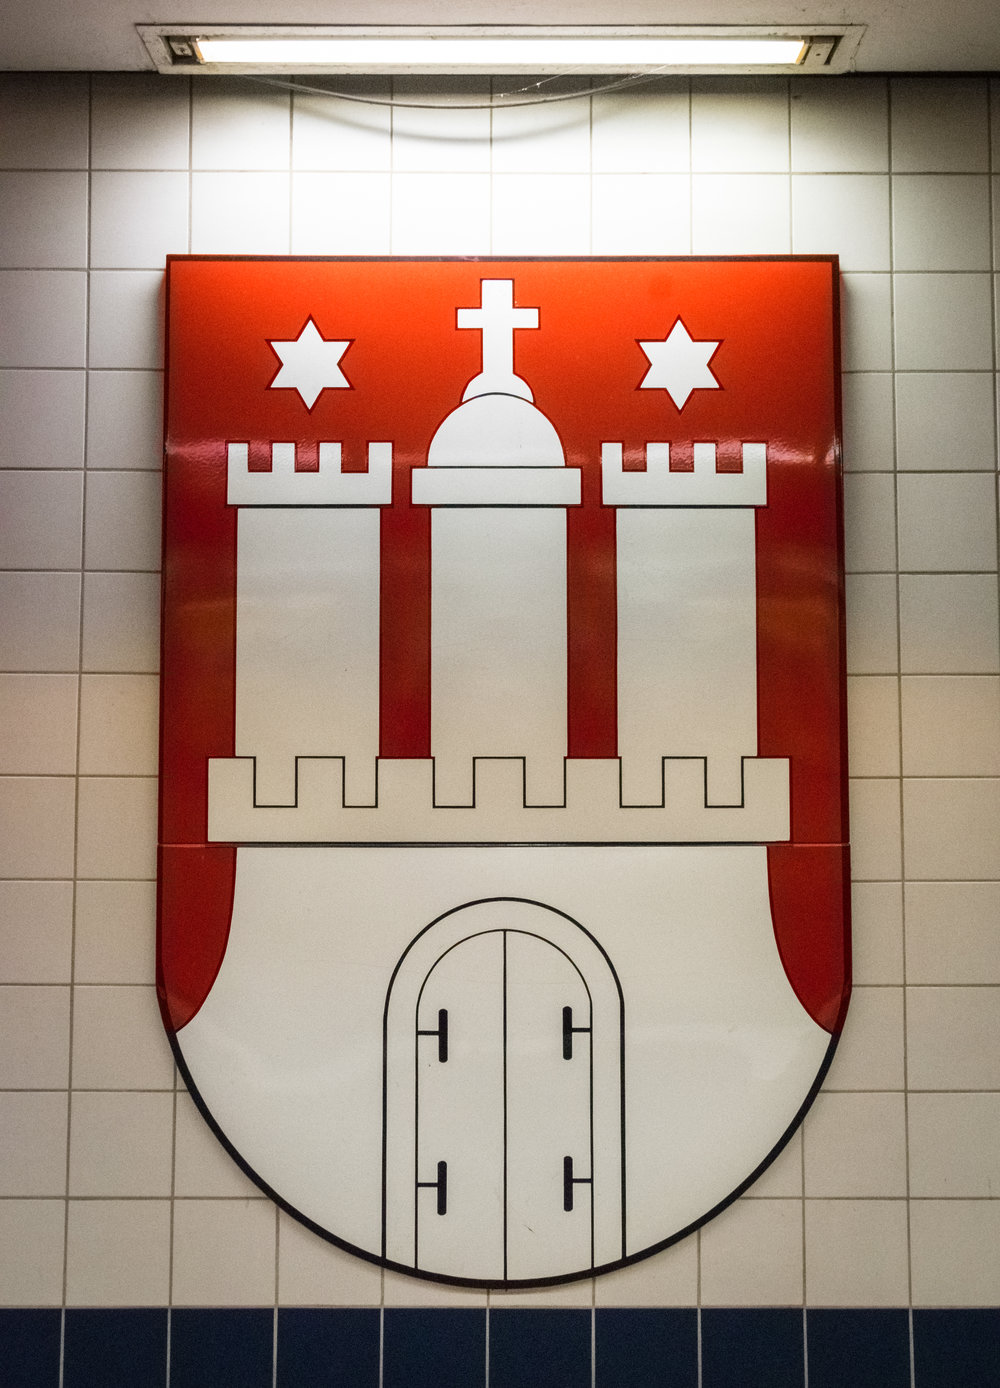 Hamburg city symbol